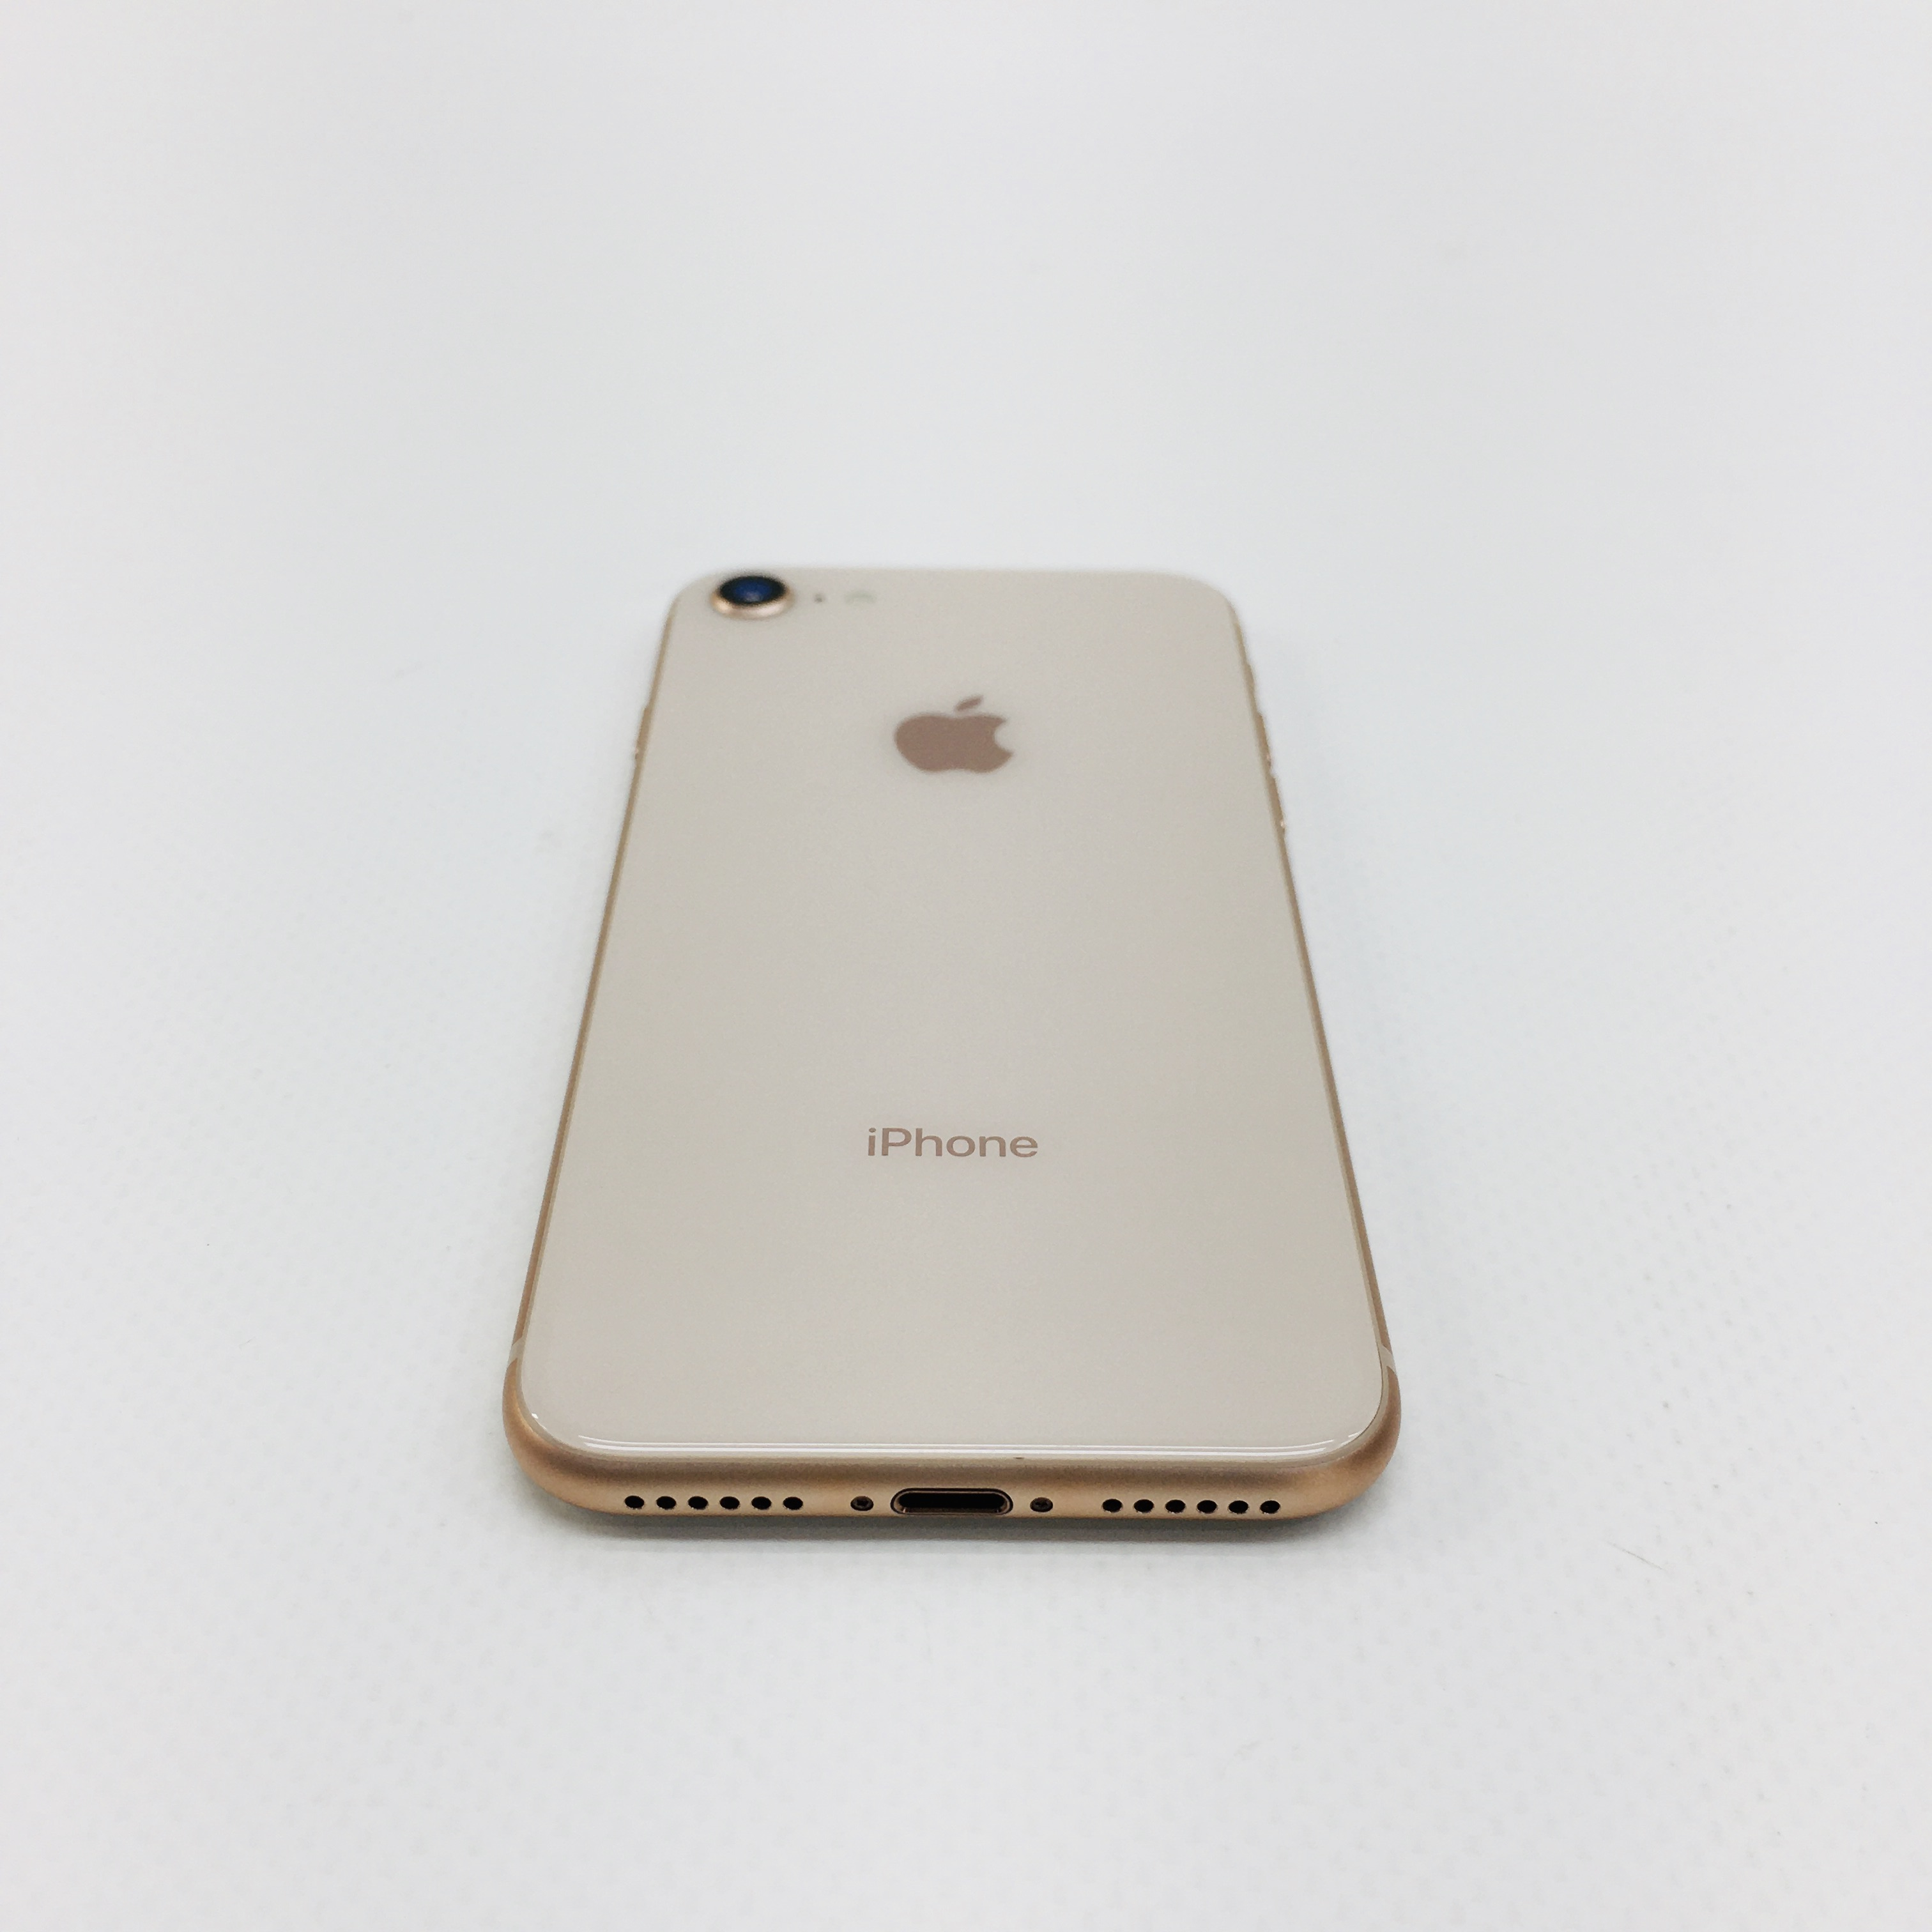 iPhone 8 64GB, 64GB, Gold, image 2